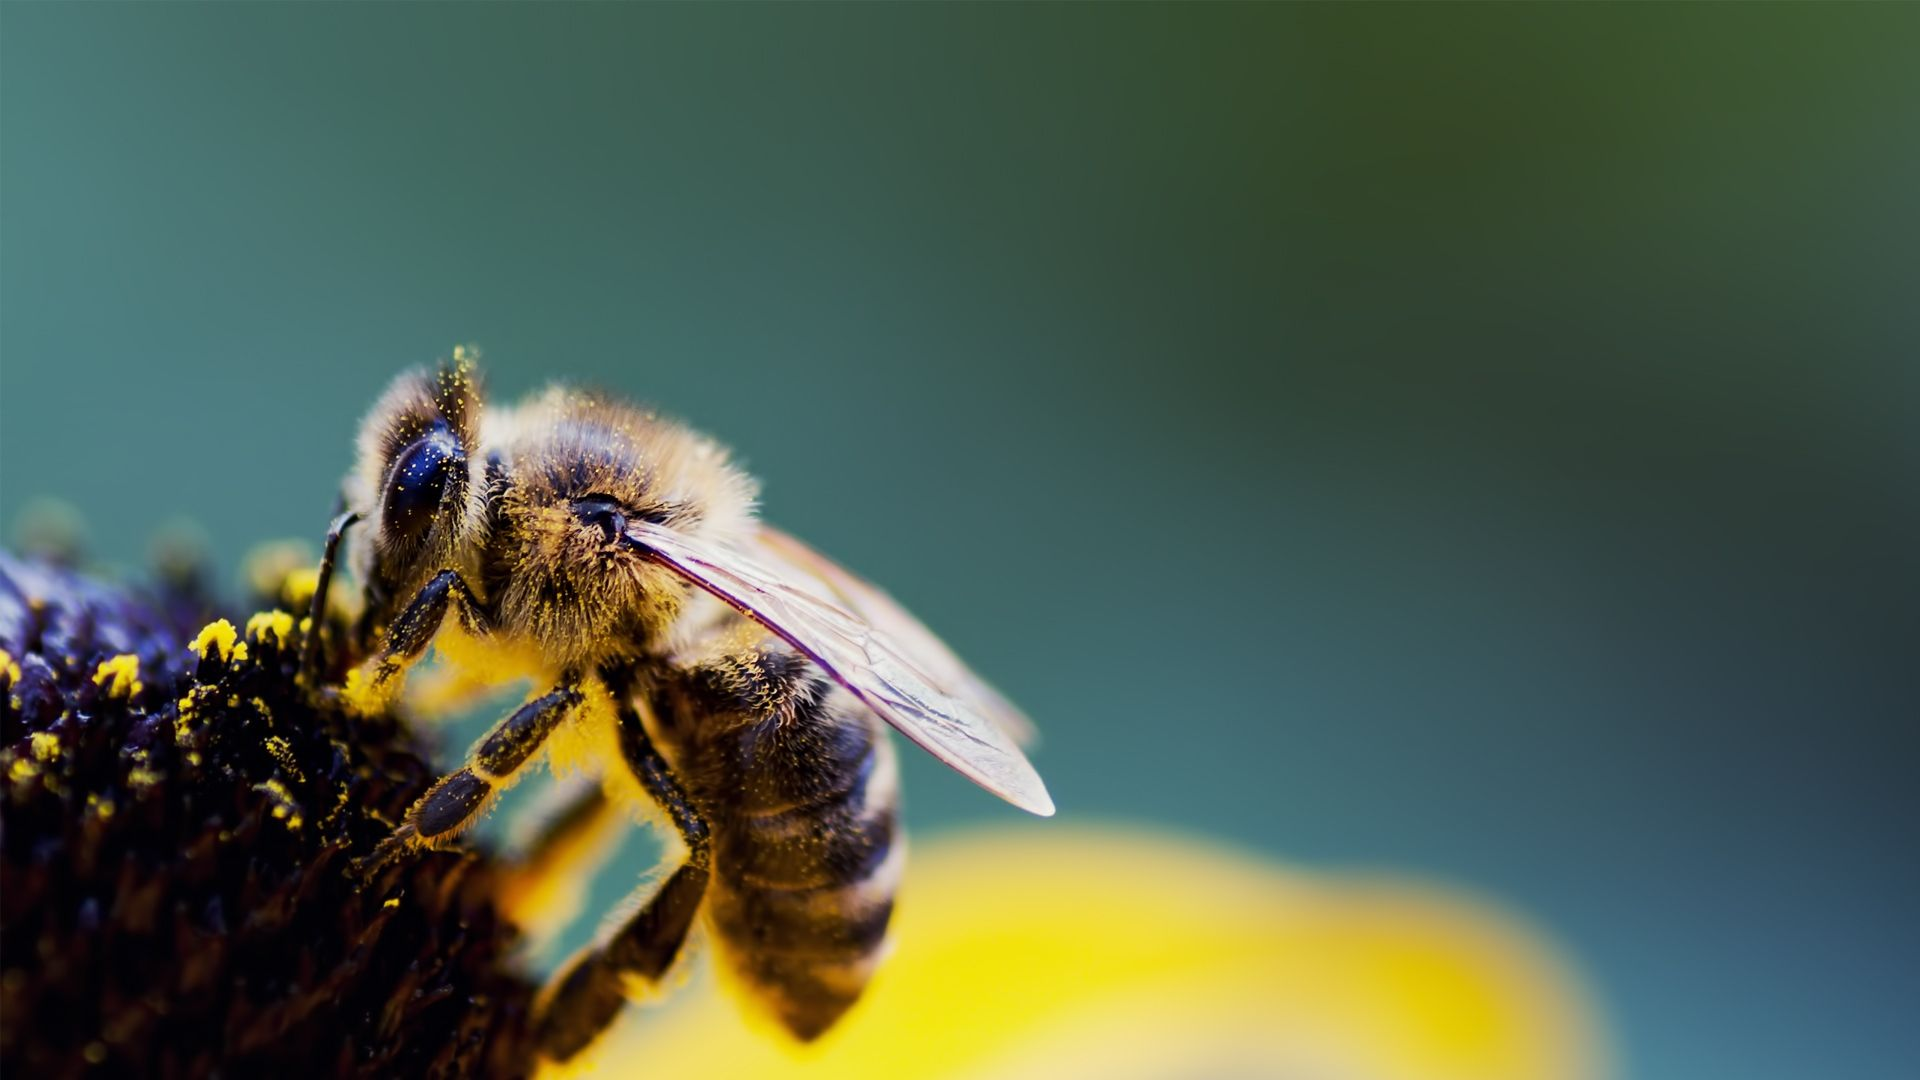 1920x1080 Wallpaper Bee Flower Wings Pollen Pollination